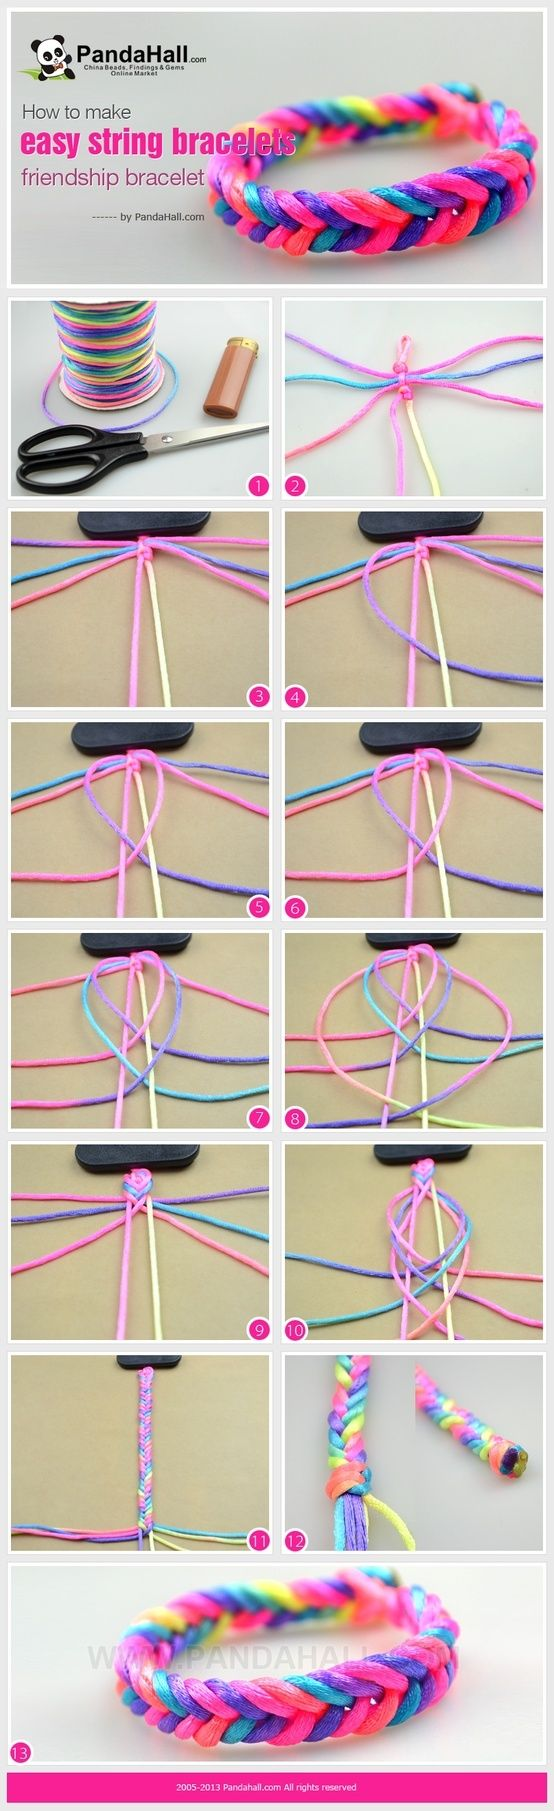 Easy herringbone style friendship bracelet tutorial. (Pinning because I have this thread and it's lovely!)